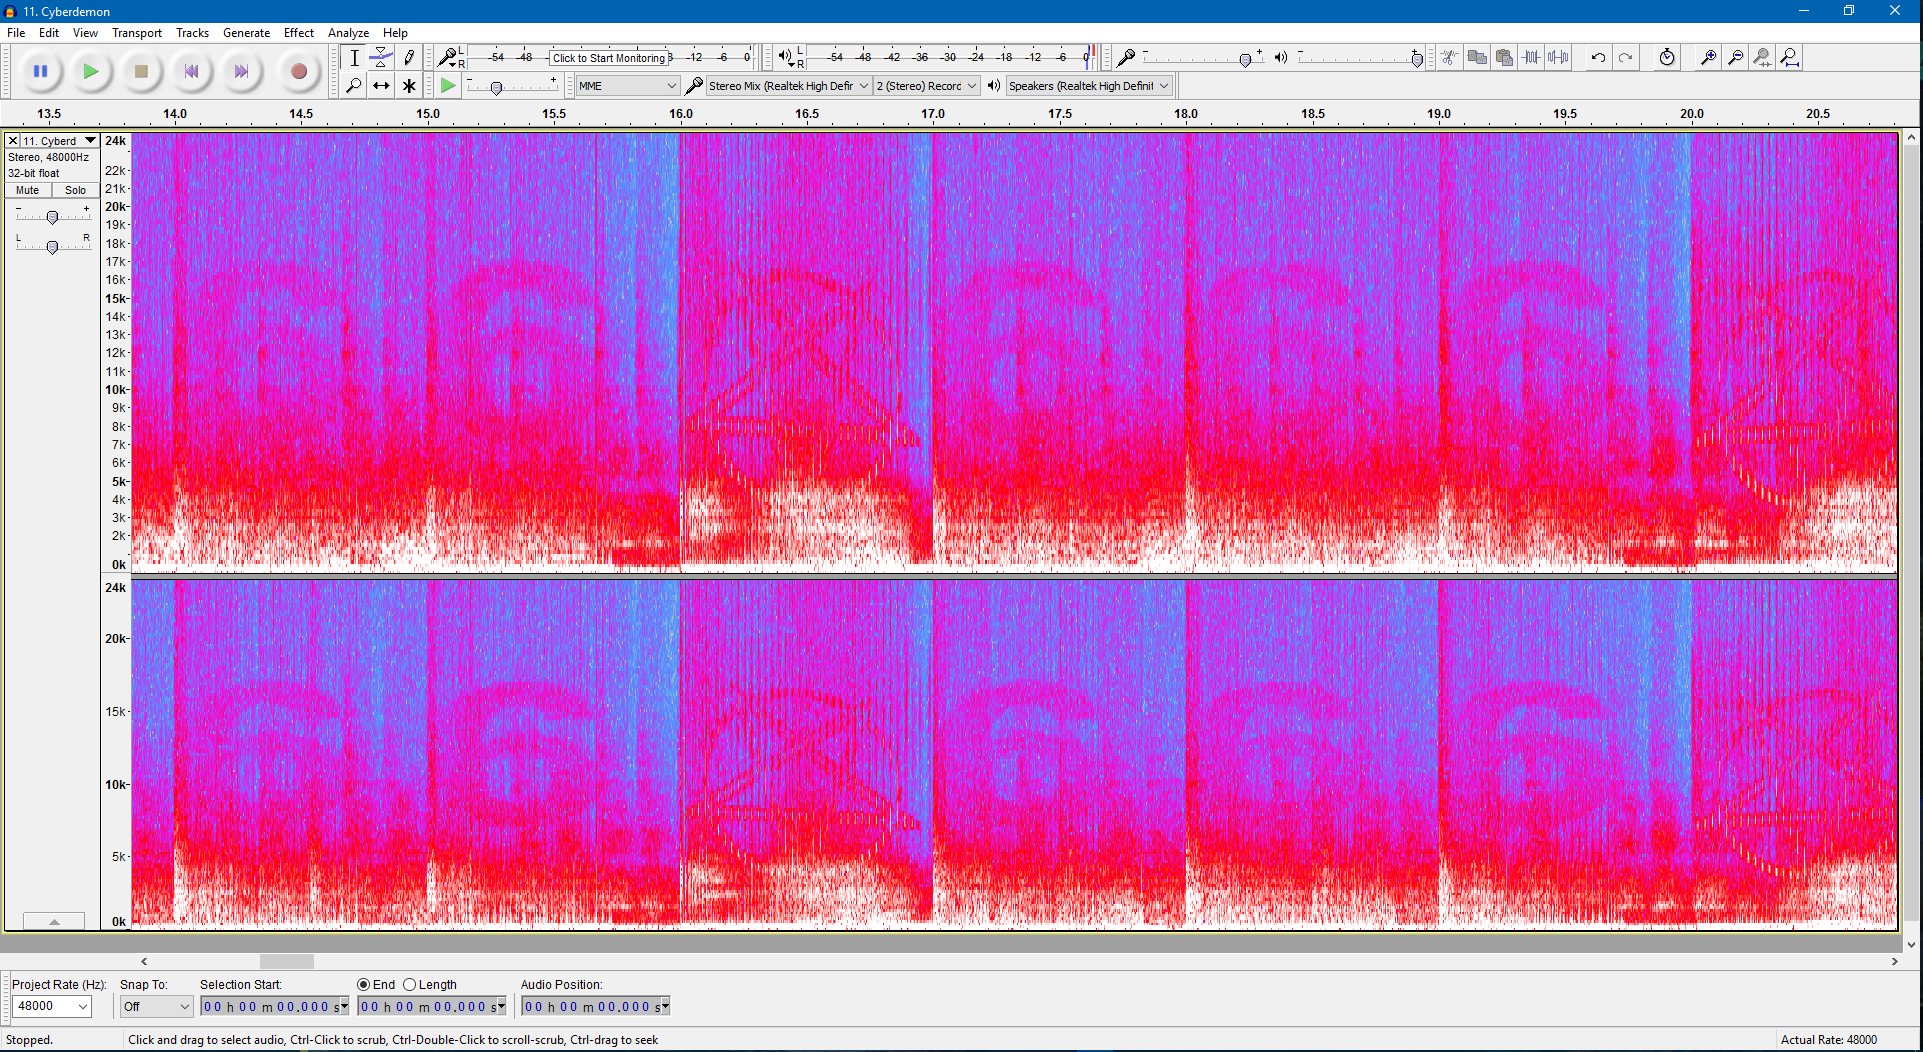 The numbers 666 appear in DOOM's soundtrack in a spectrogram